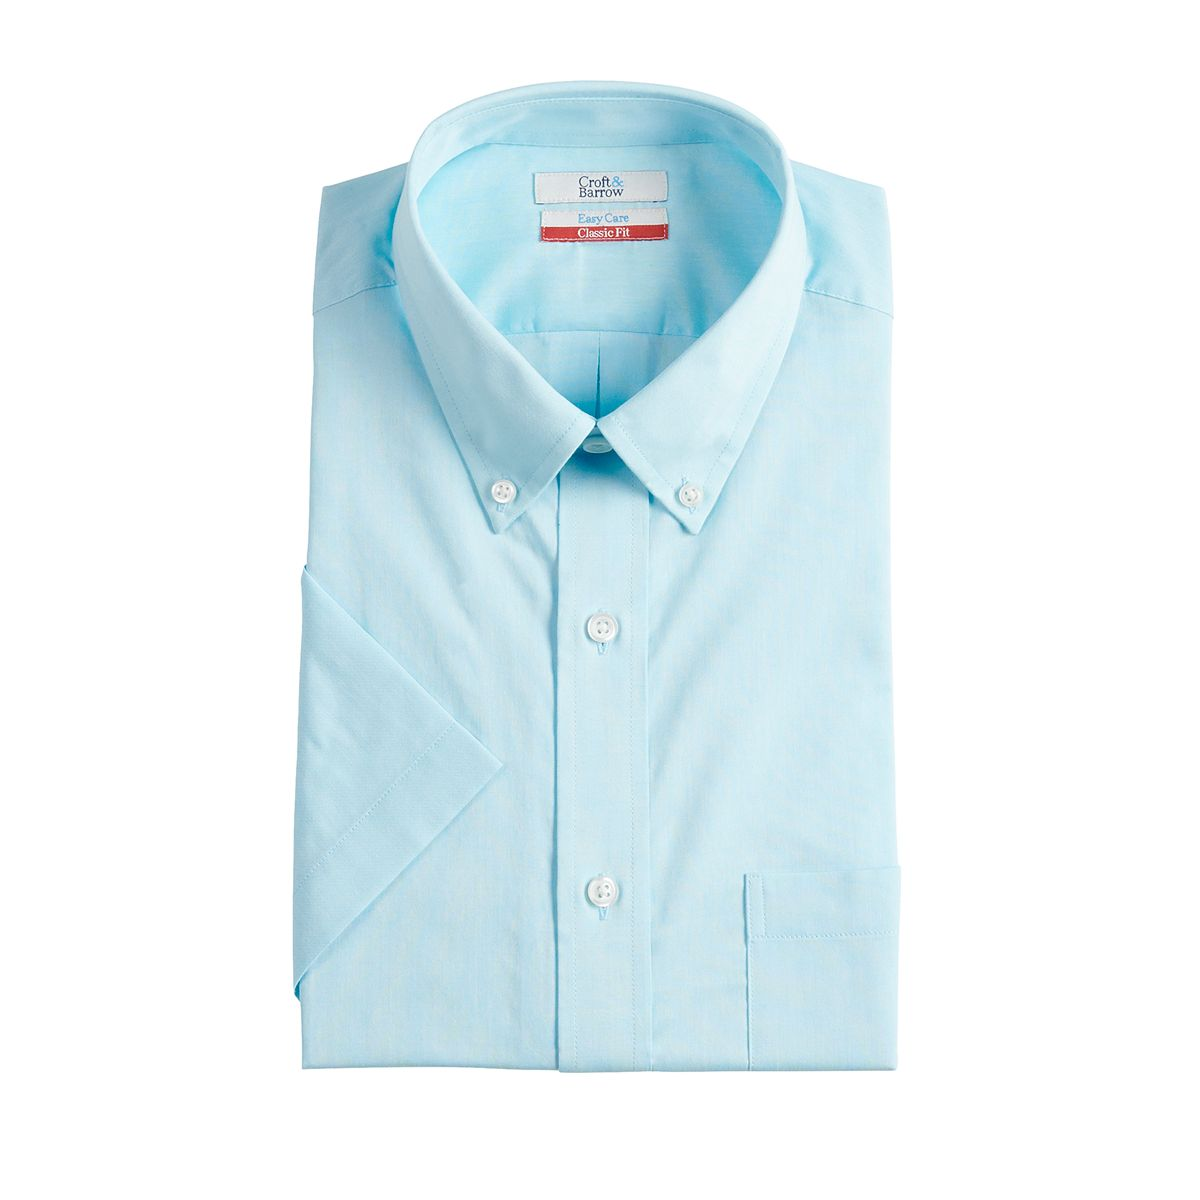 Men's Croft & Barrow Classic-Fit Easy-Care Short-Sleeved Button-Down Collar Dress Shirt (select colors/sizes)